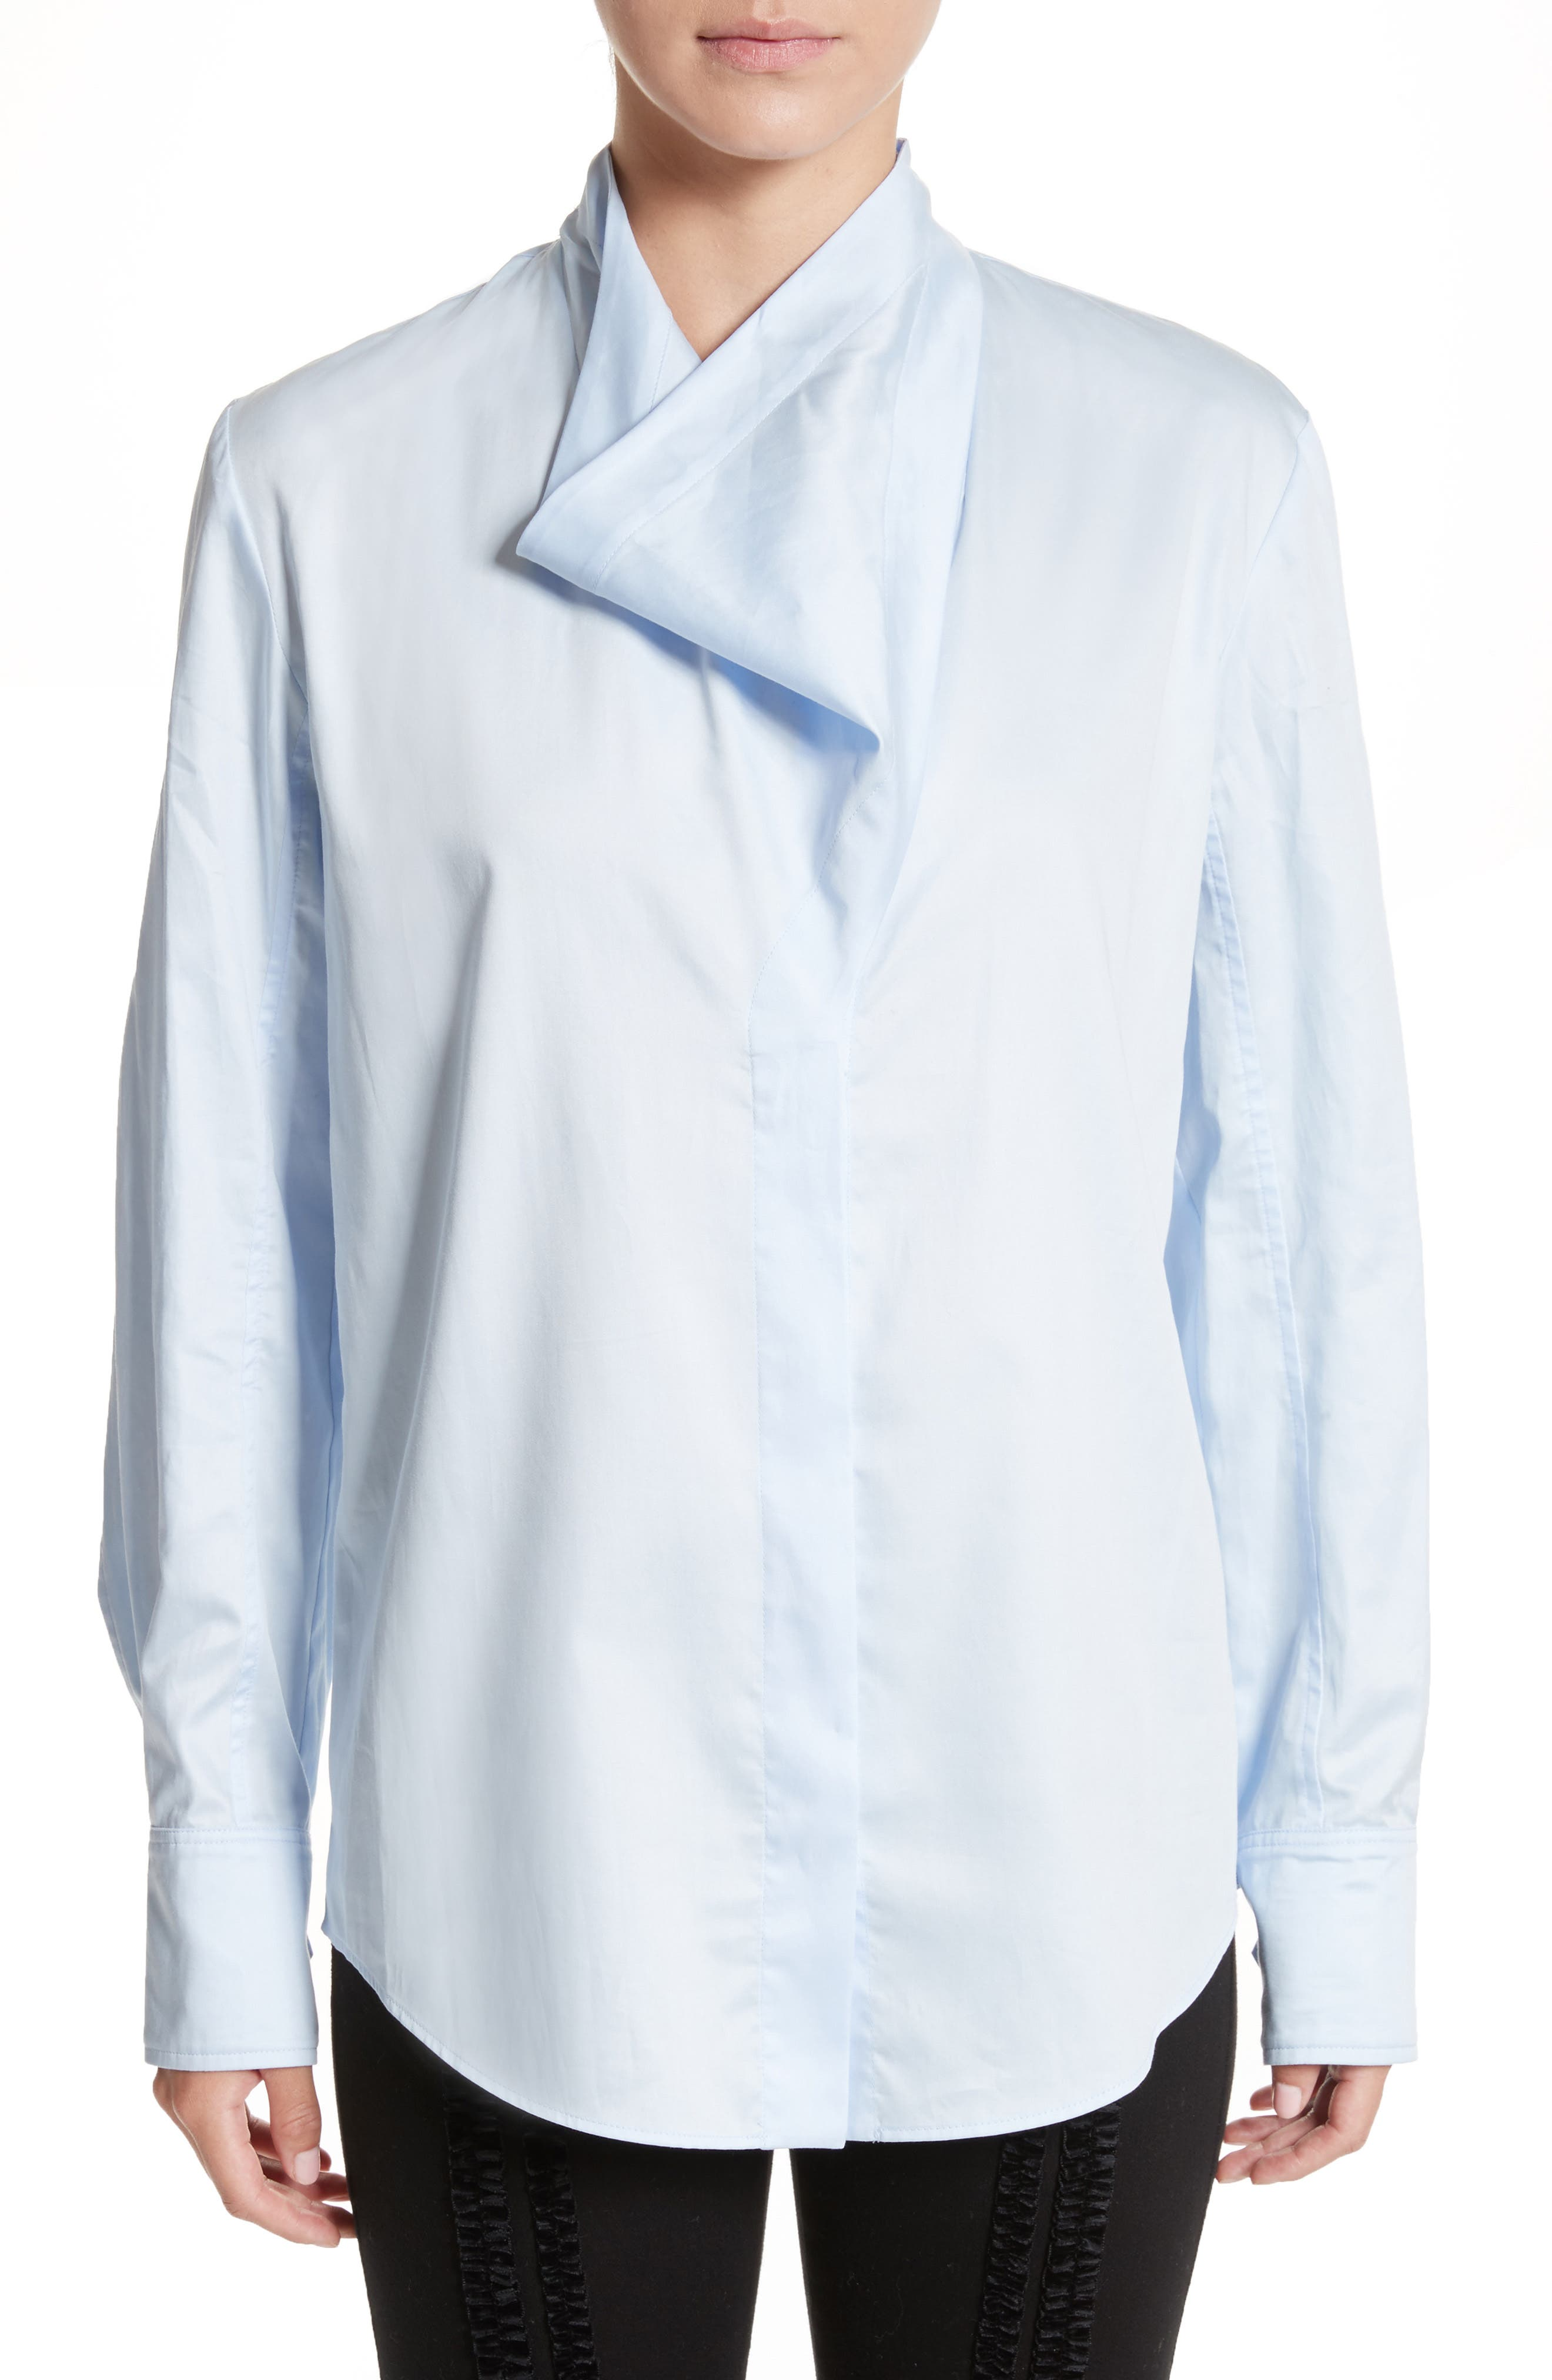 STELLA MCCARTNEY Damiane Cotton Poplin Shirt